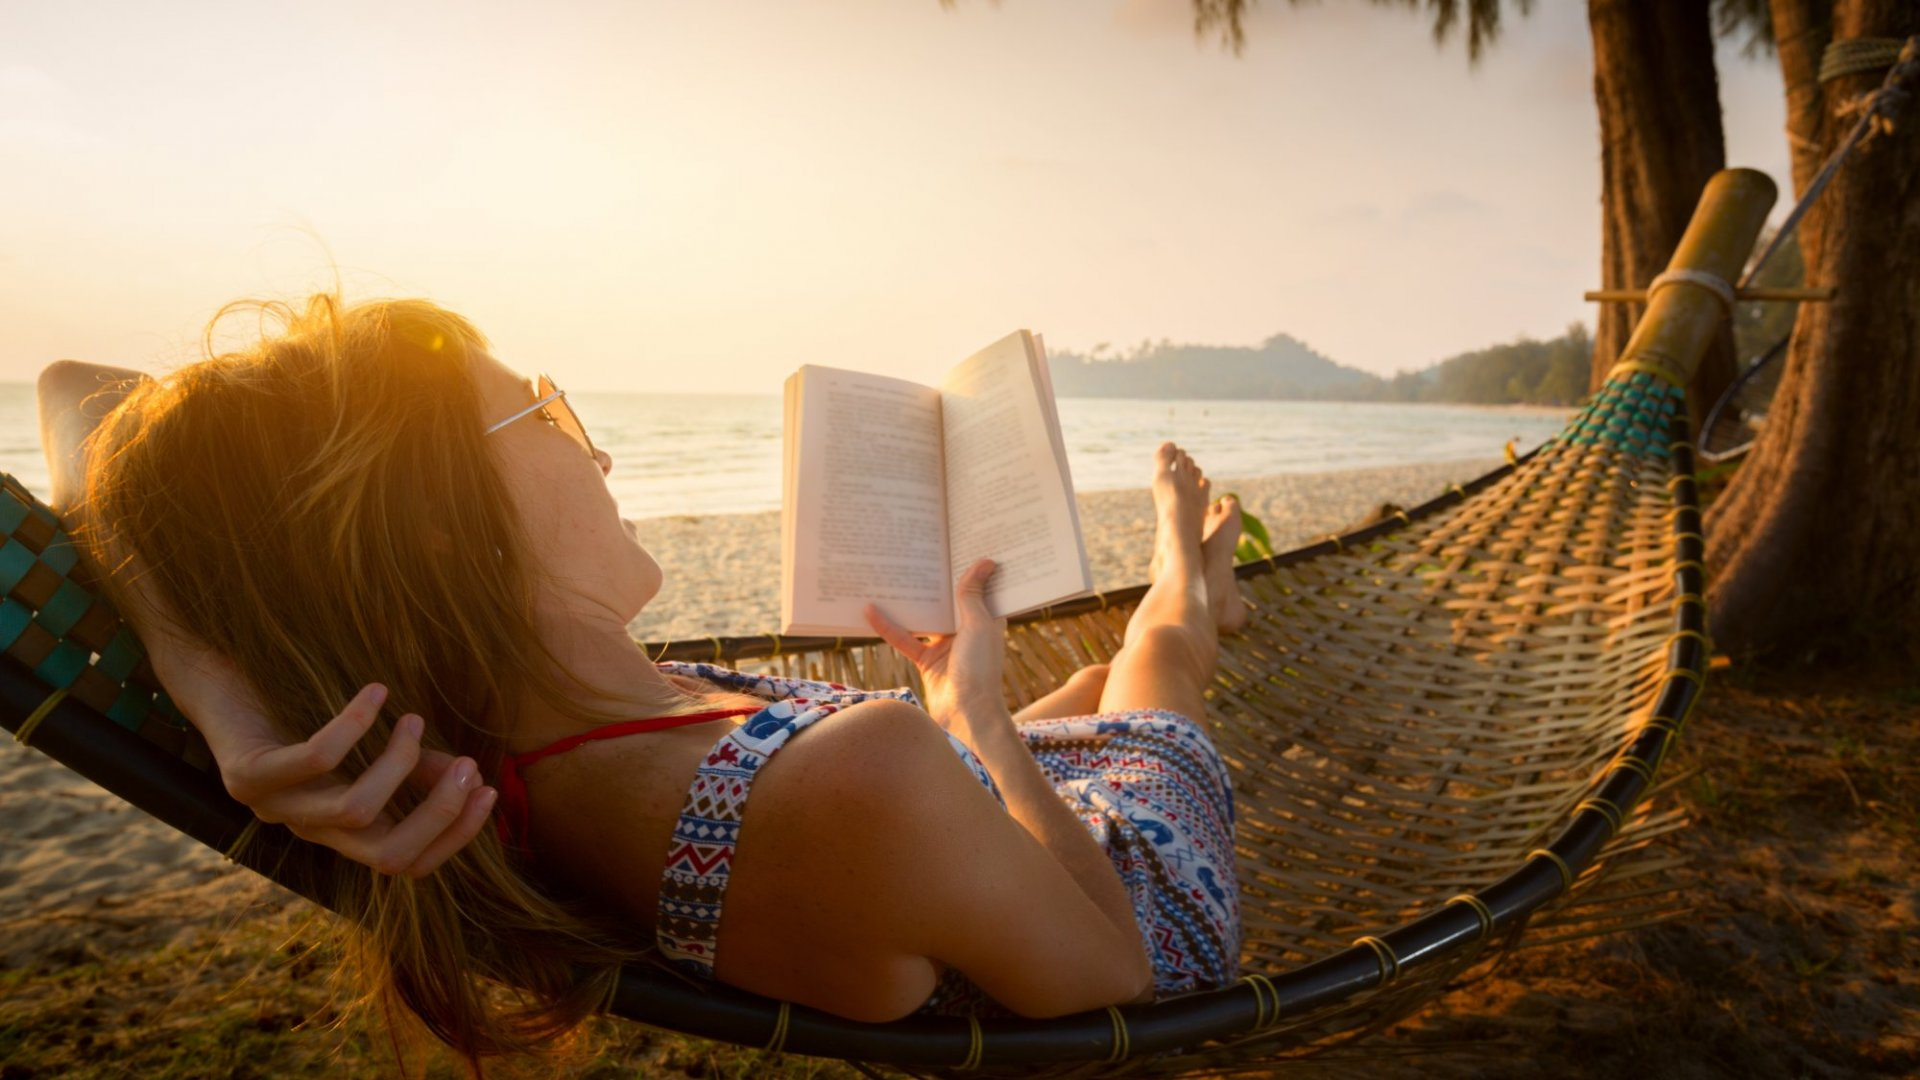 Give Me A Break: Why Employees and Companies Should Prioritize Vacation